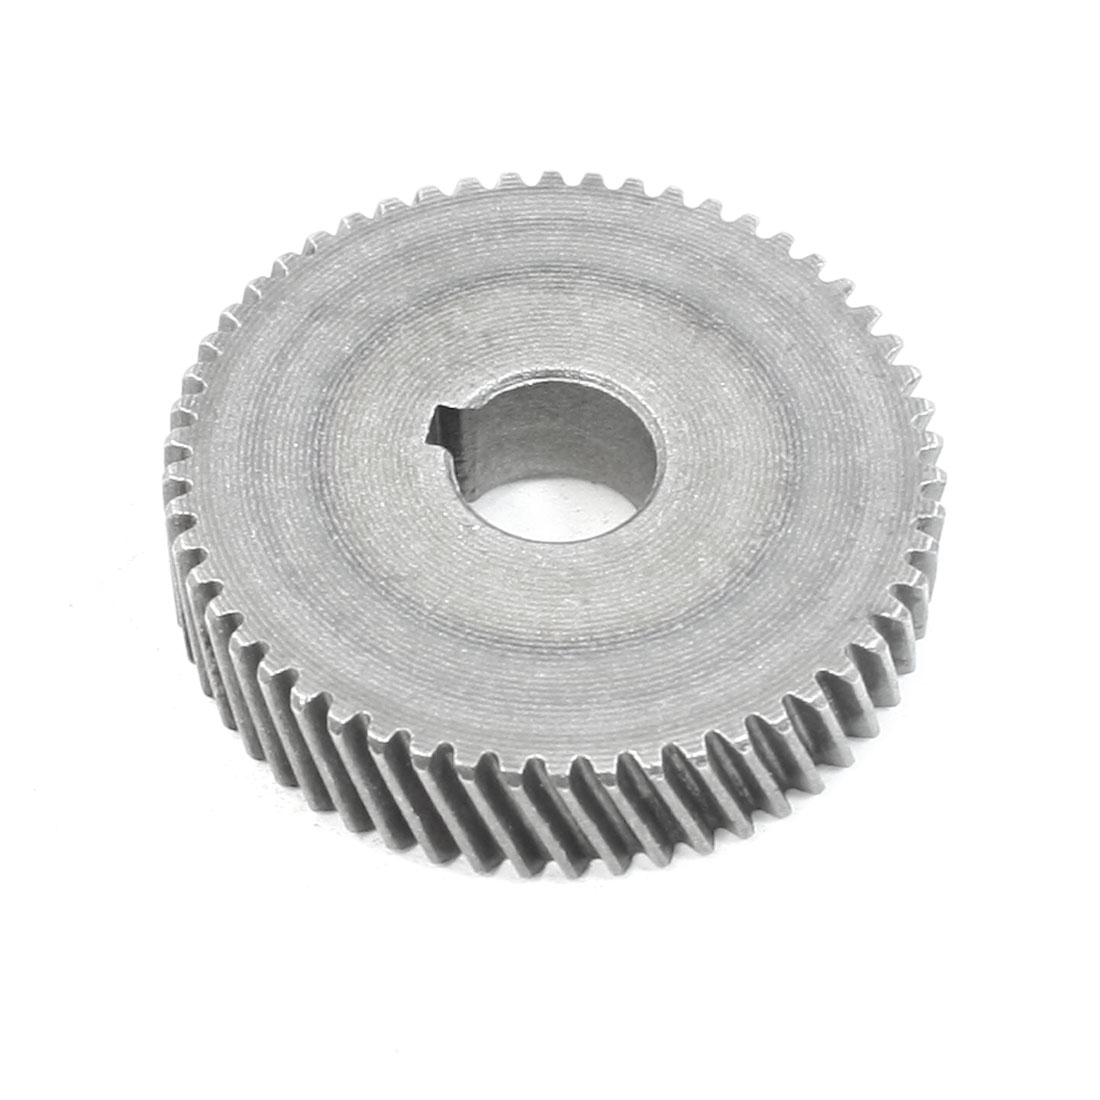 Power Tool Replacement Part Helical Gear 54 Teeth for Hitachi C7 Circular Saw